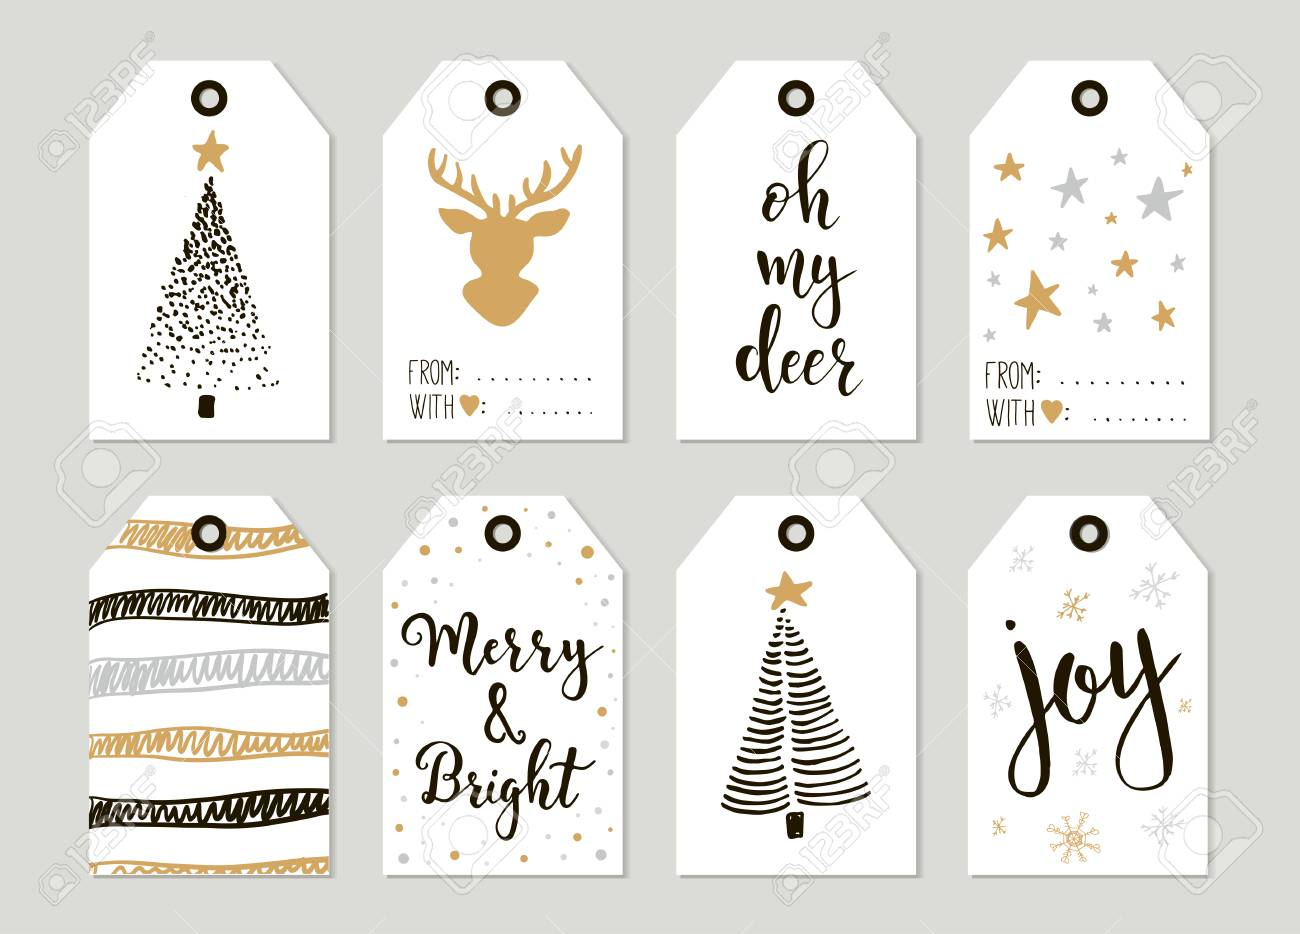 Merry Christmas Gift Tags.Merry Christmas And Happy New Year Vintage Gift Tags And Cards